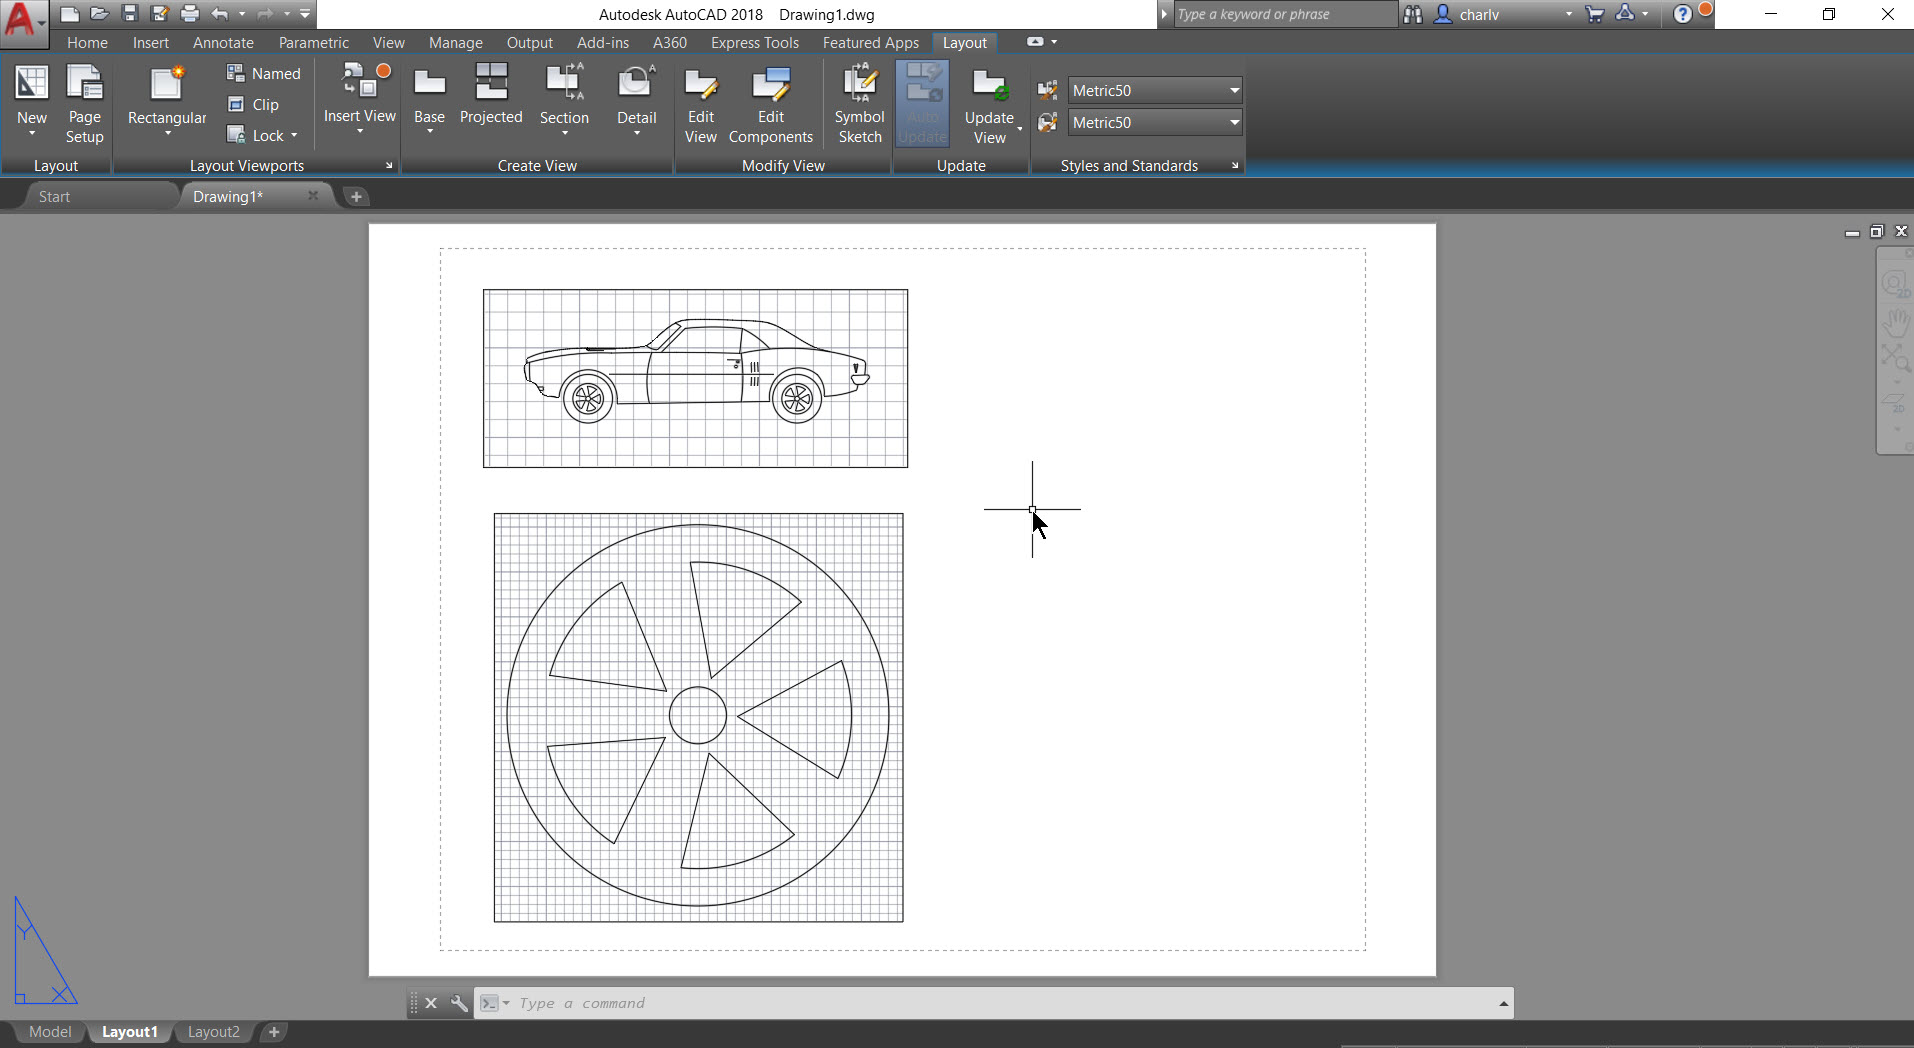 4e AutoCAD 2018.1 new feature – Named View and Viewport creation.